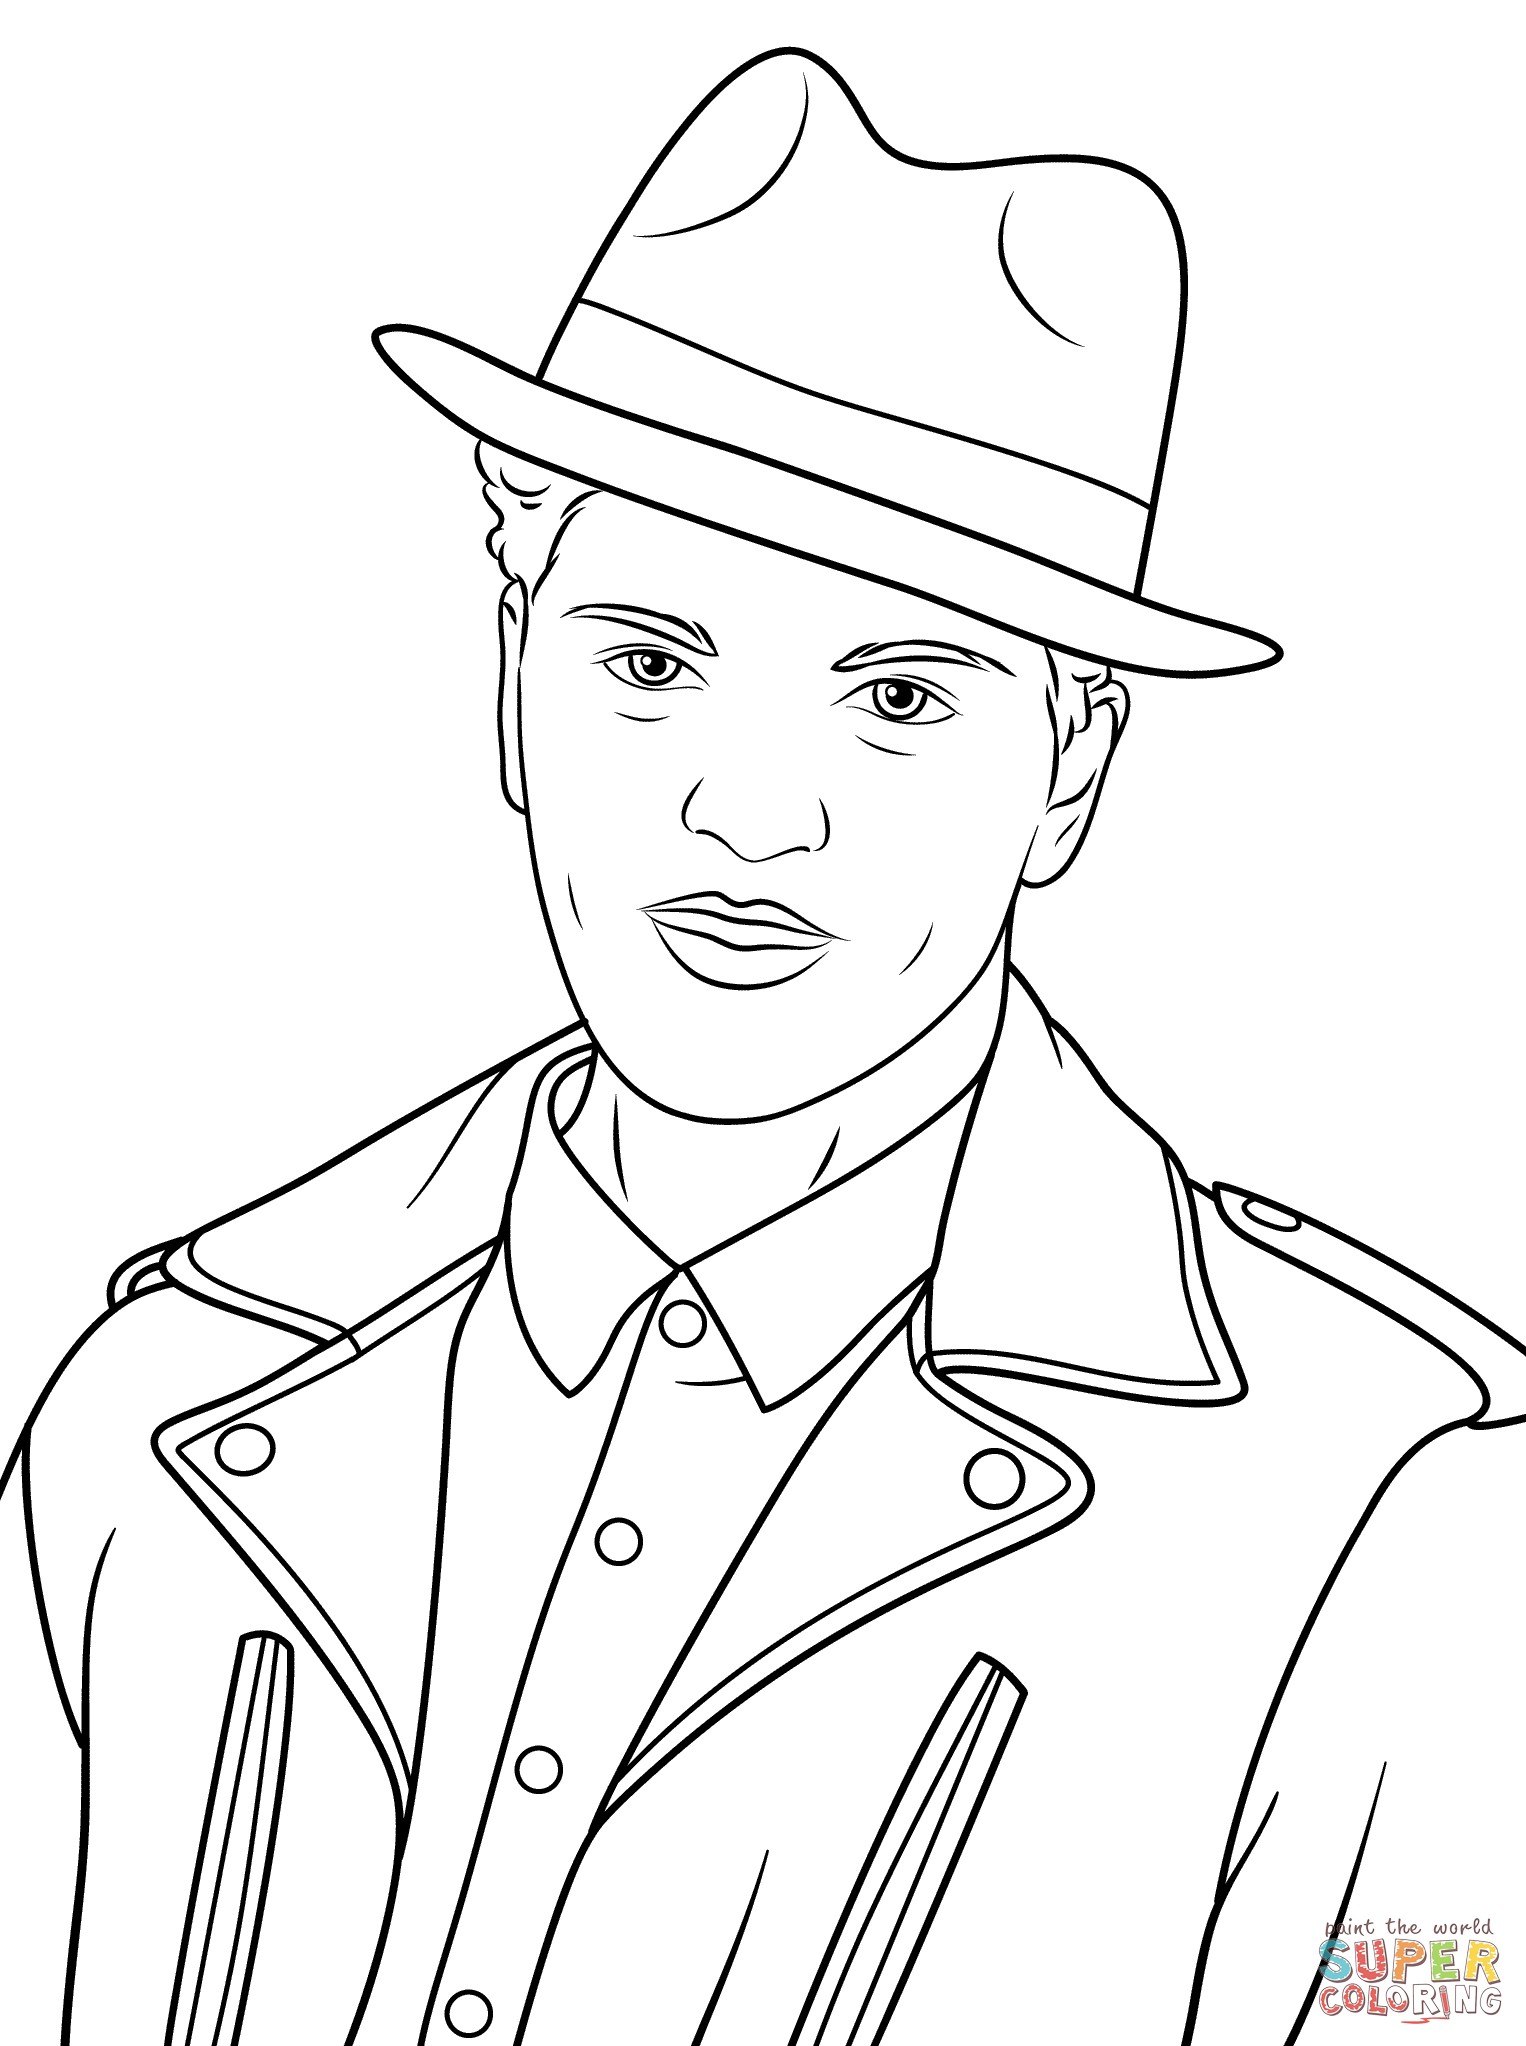 Cesar Chavez Coloring Page At Getcolorings